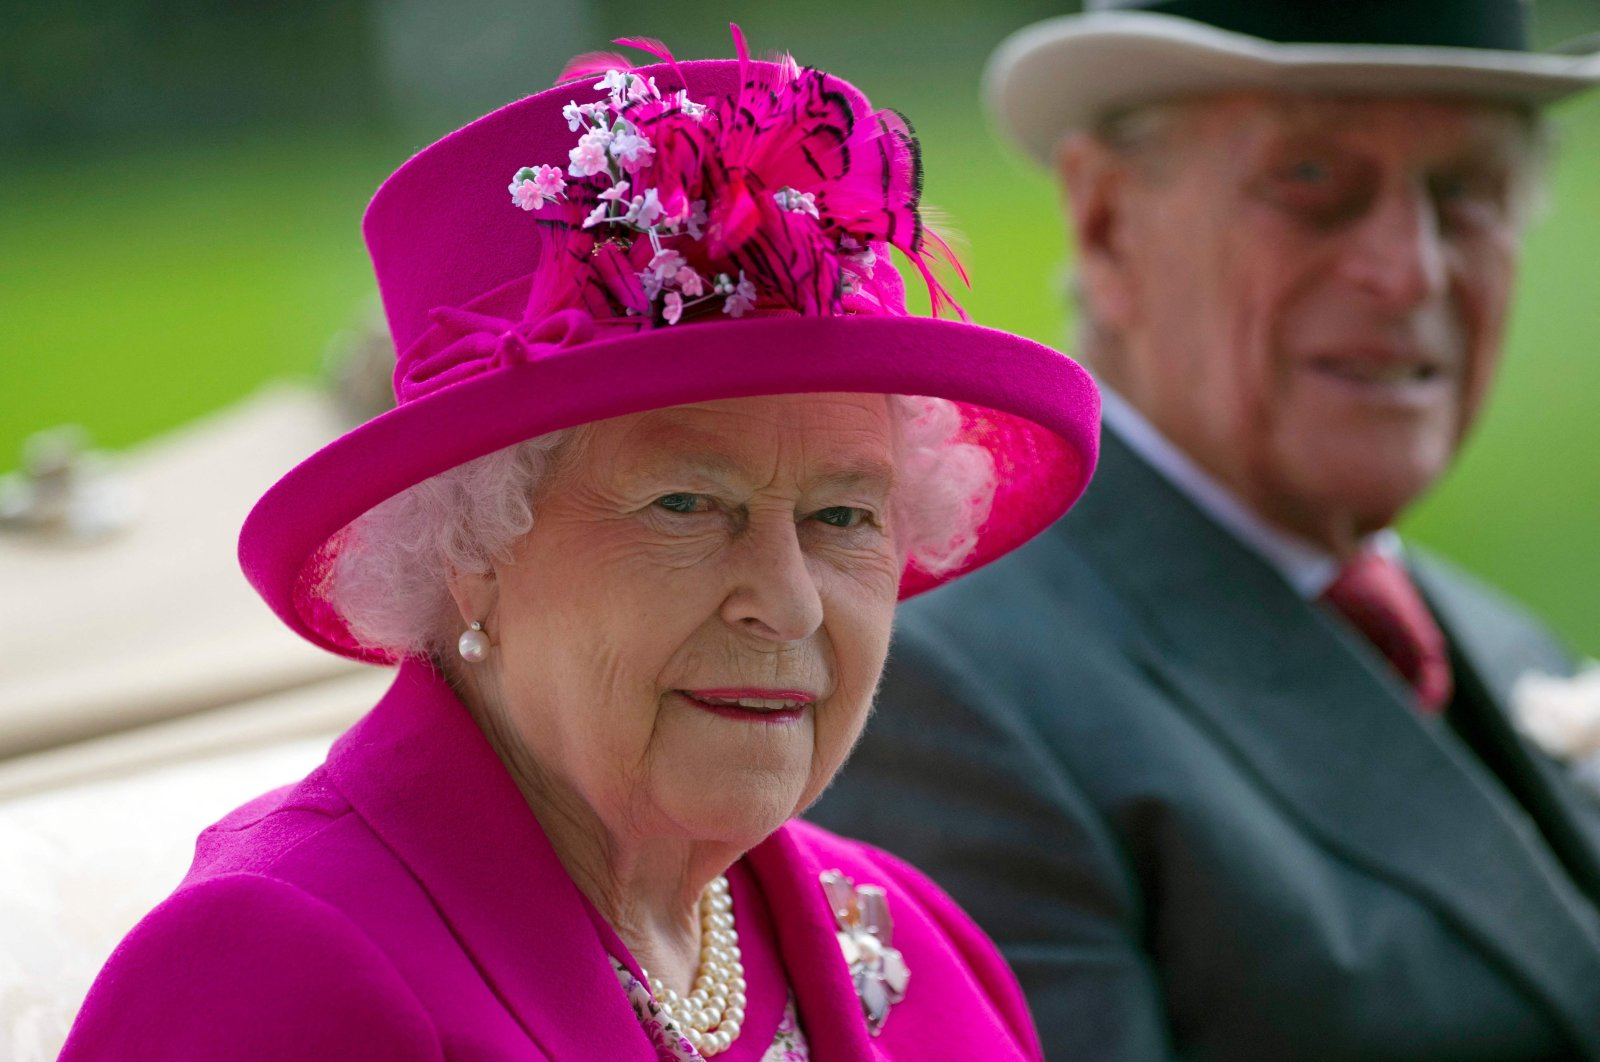 Britain's Queen Elizabeth II (L) and her husband Prince Philip, Duke of Edinburgh, arrive on the fourth day of the annual Royal Ascot horse racing event near Ascot, west of London, U.K., June 20, 2014. (AFP Photo)